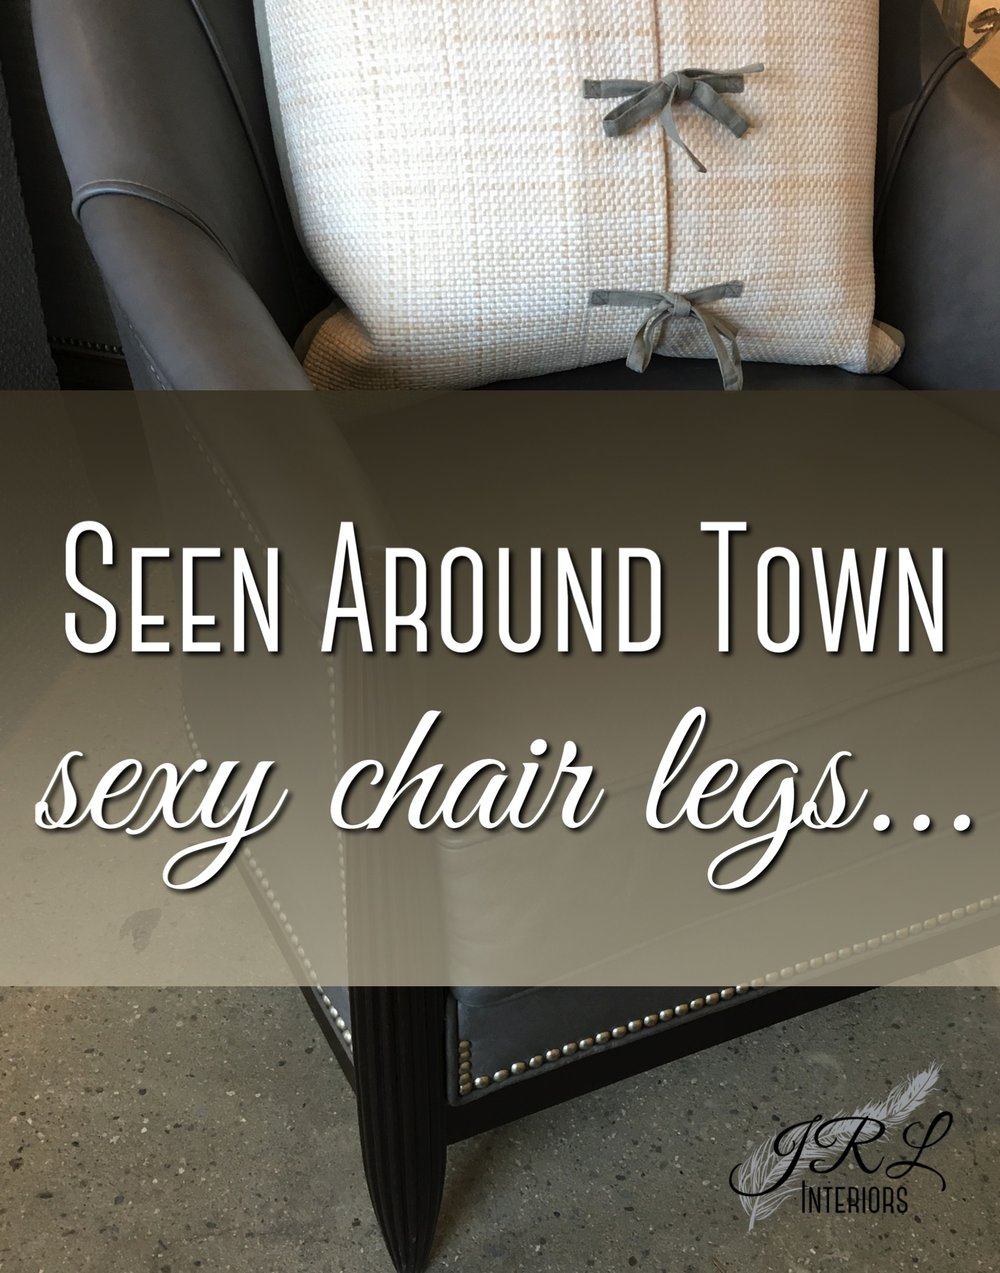 seen-around-town.-sexy-chair-legs.jpg